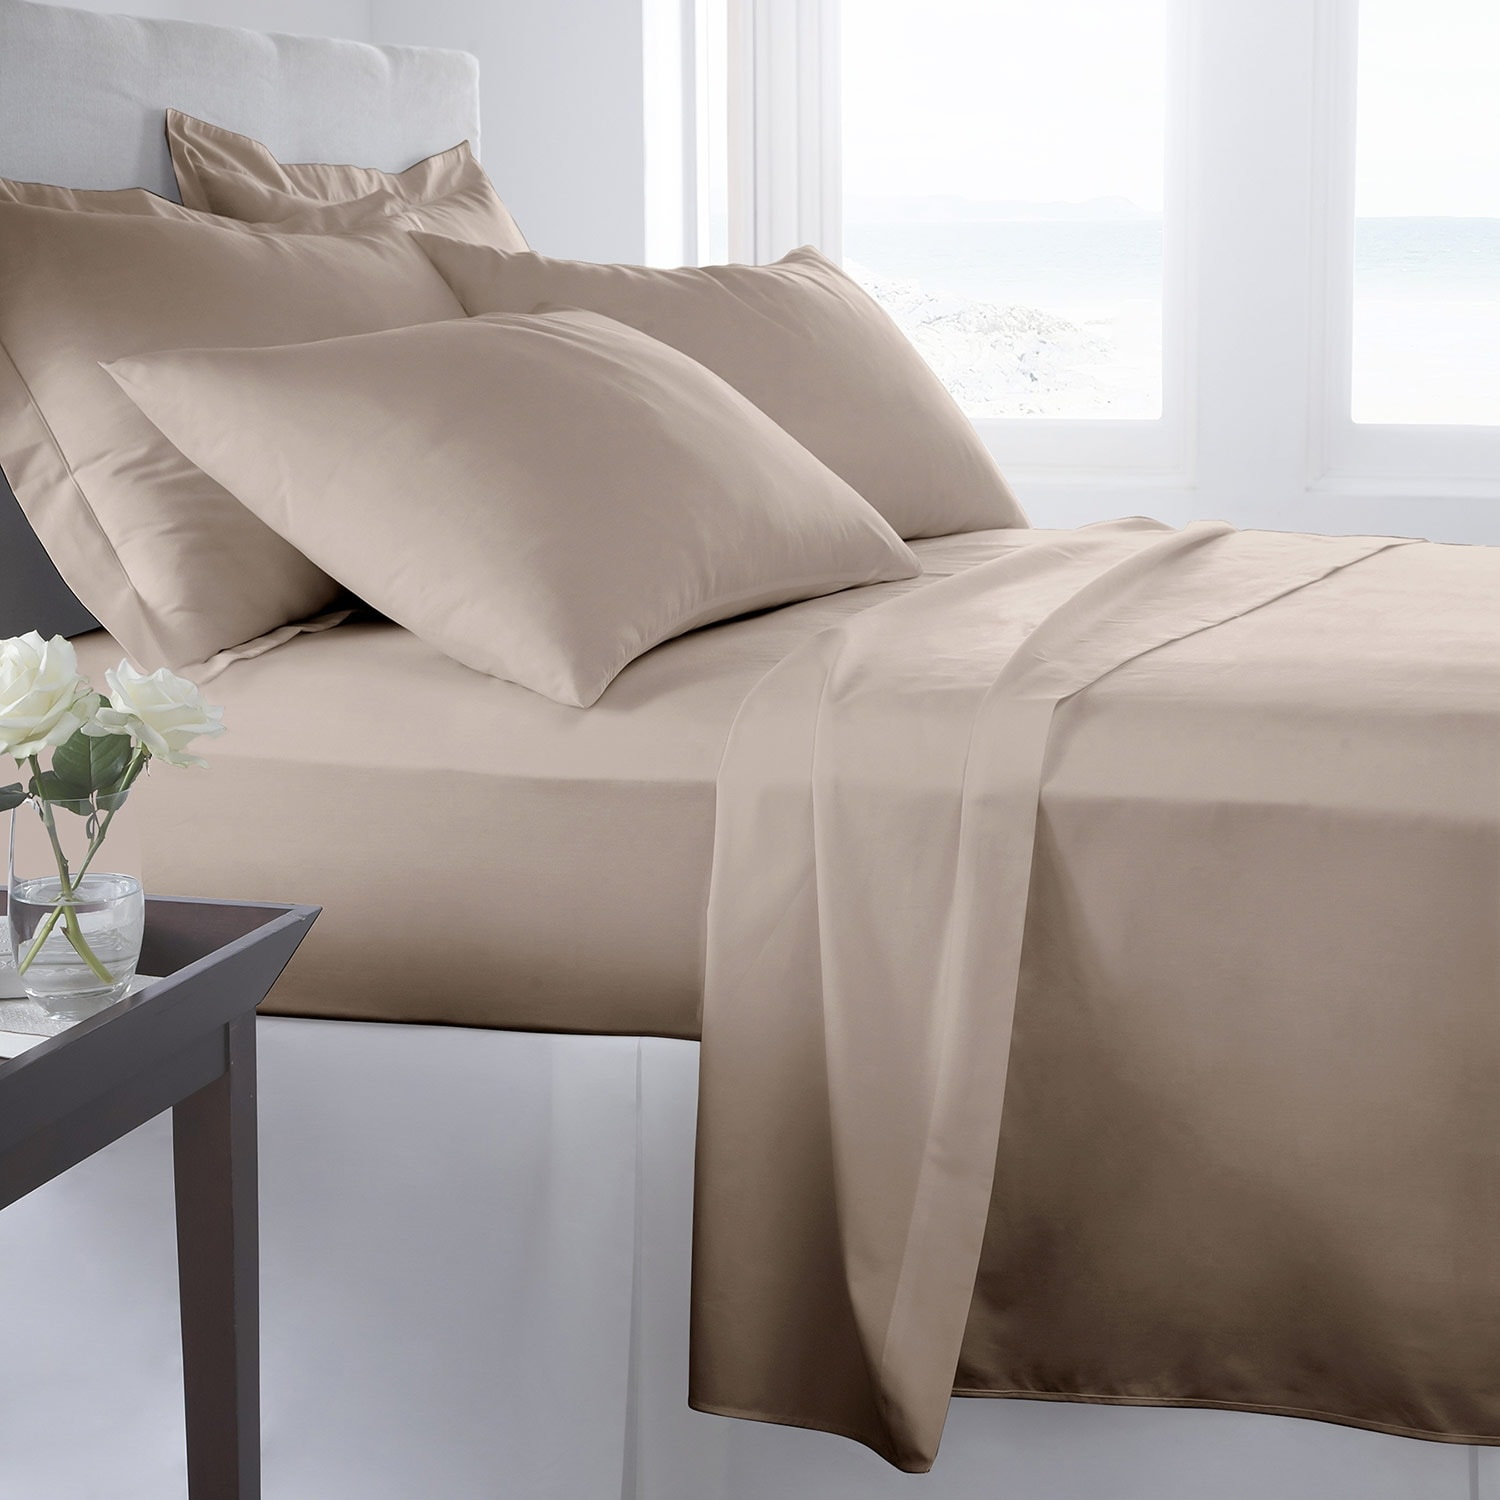 500 Thread Count King Sheet Set - Taupe